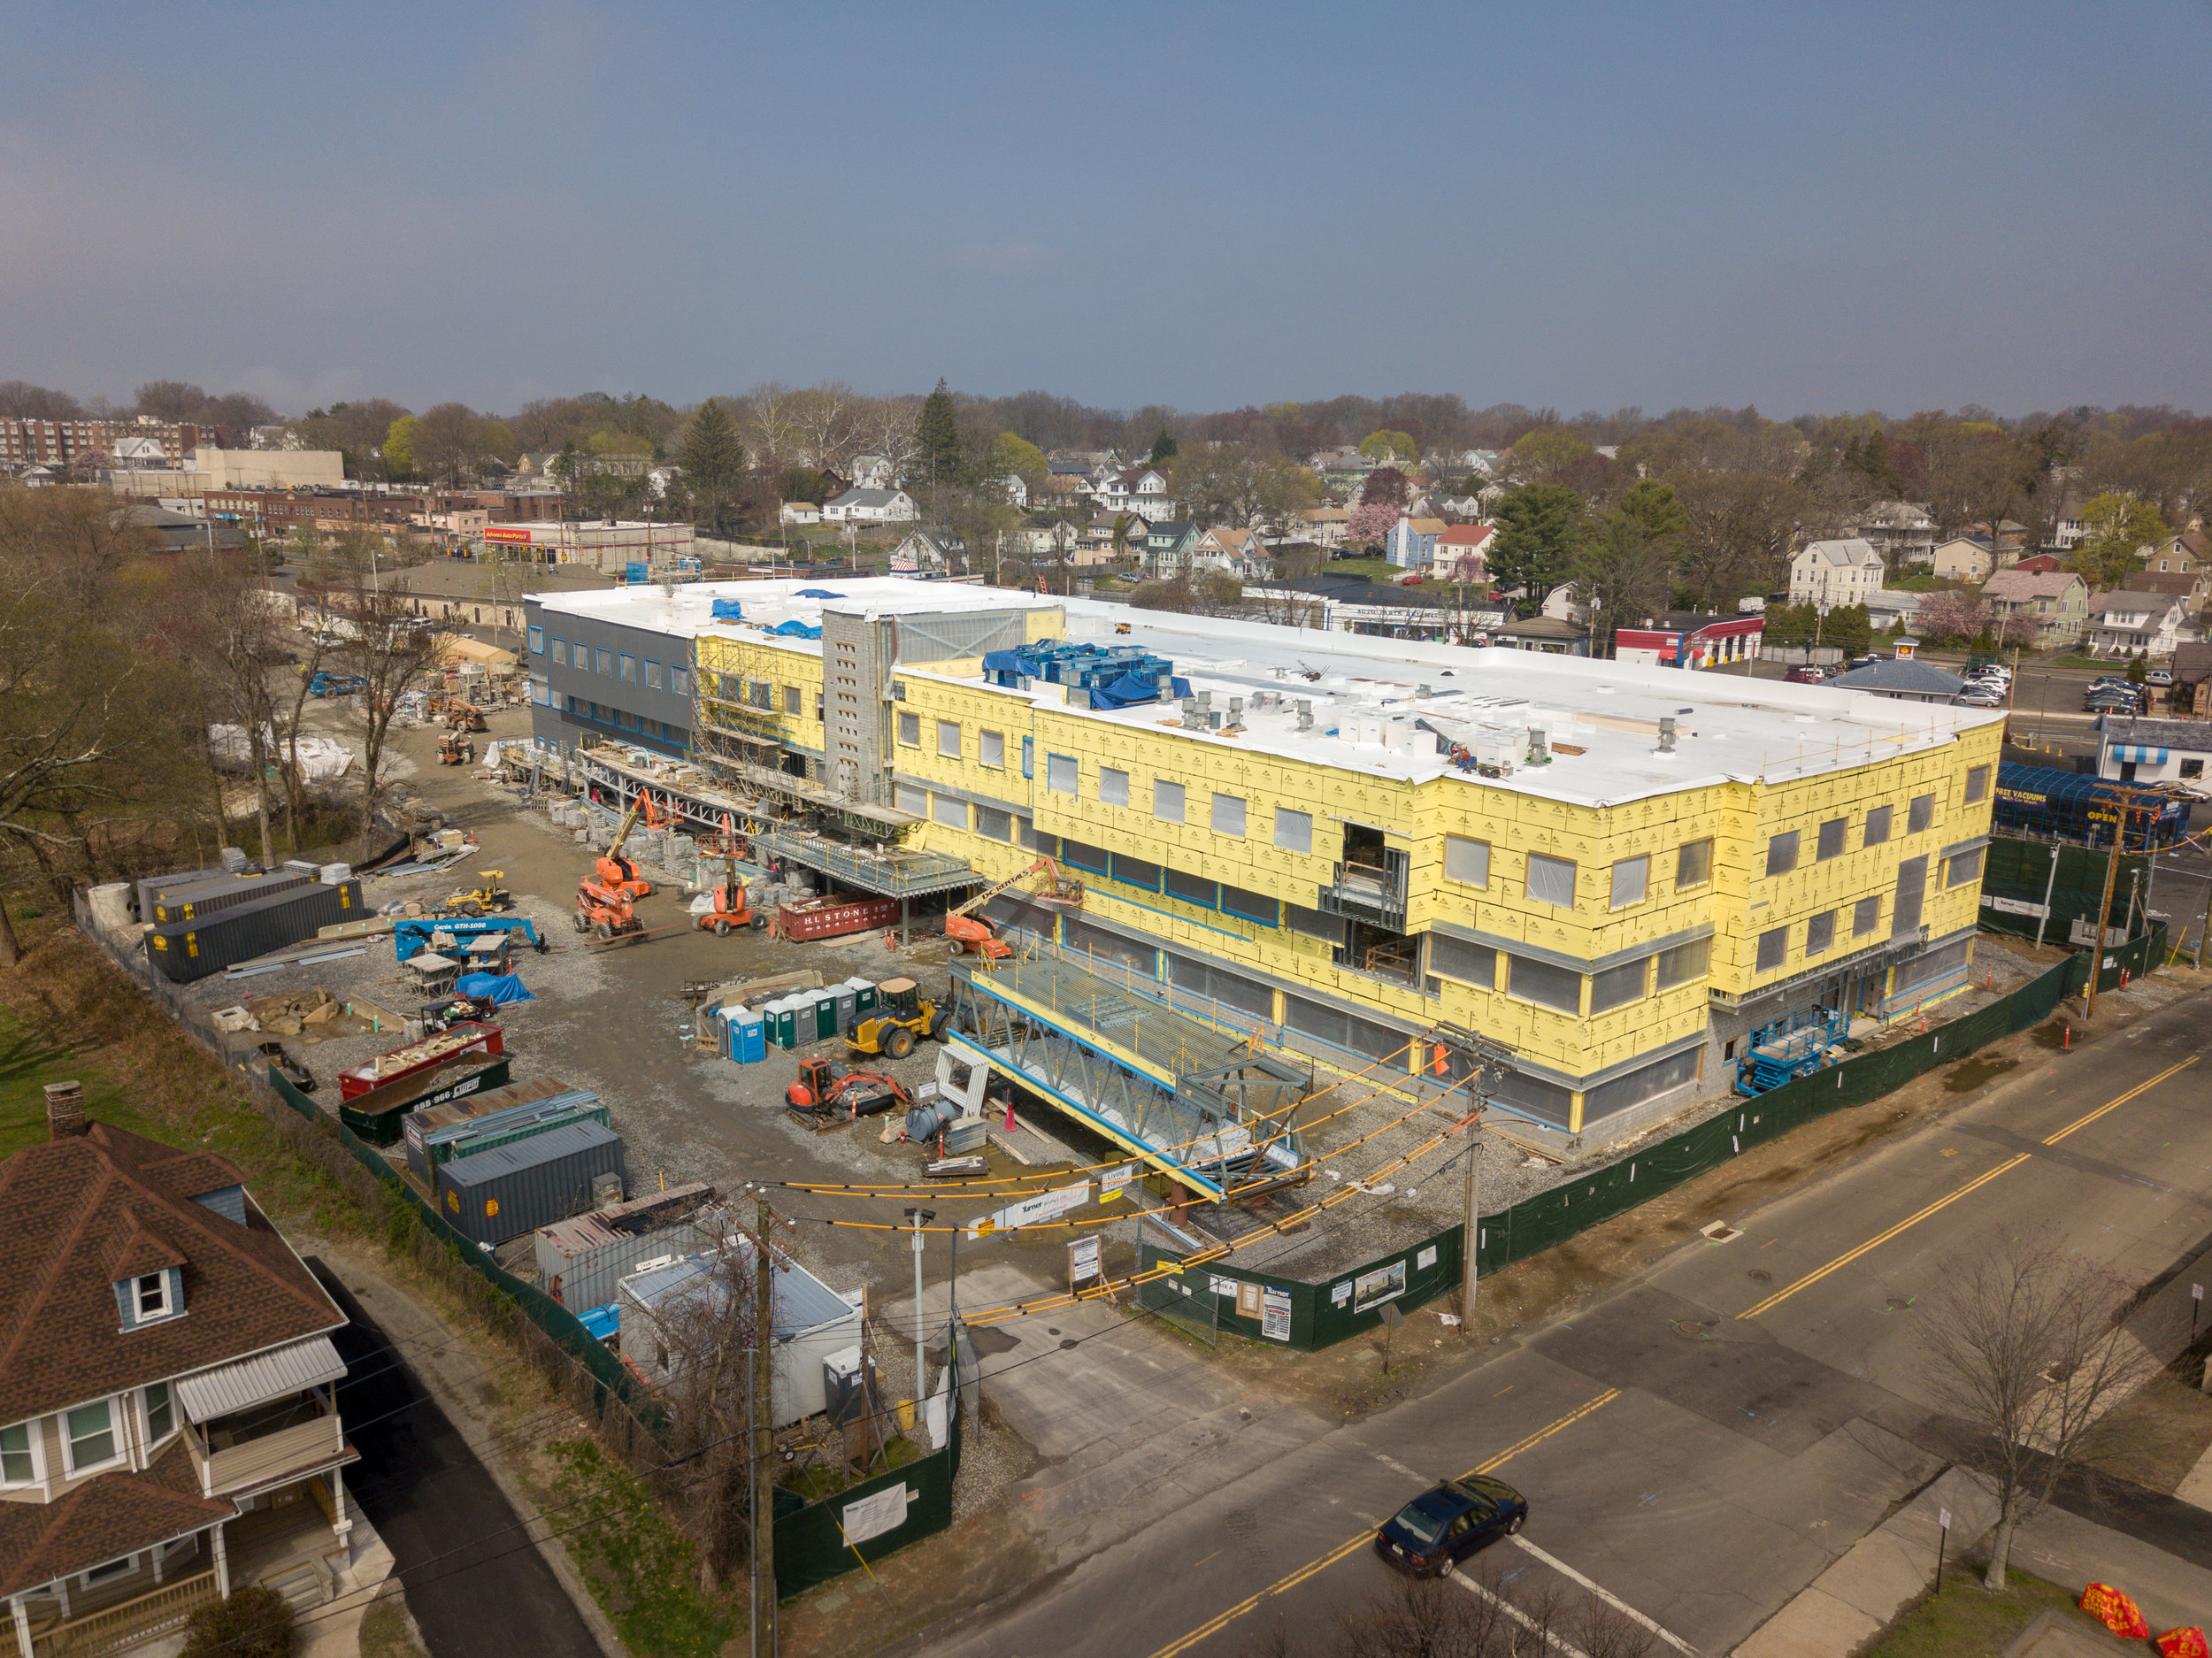 Stratford High School Construction - 2018-04-28 _ 0014.jpg